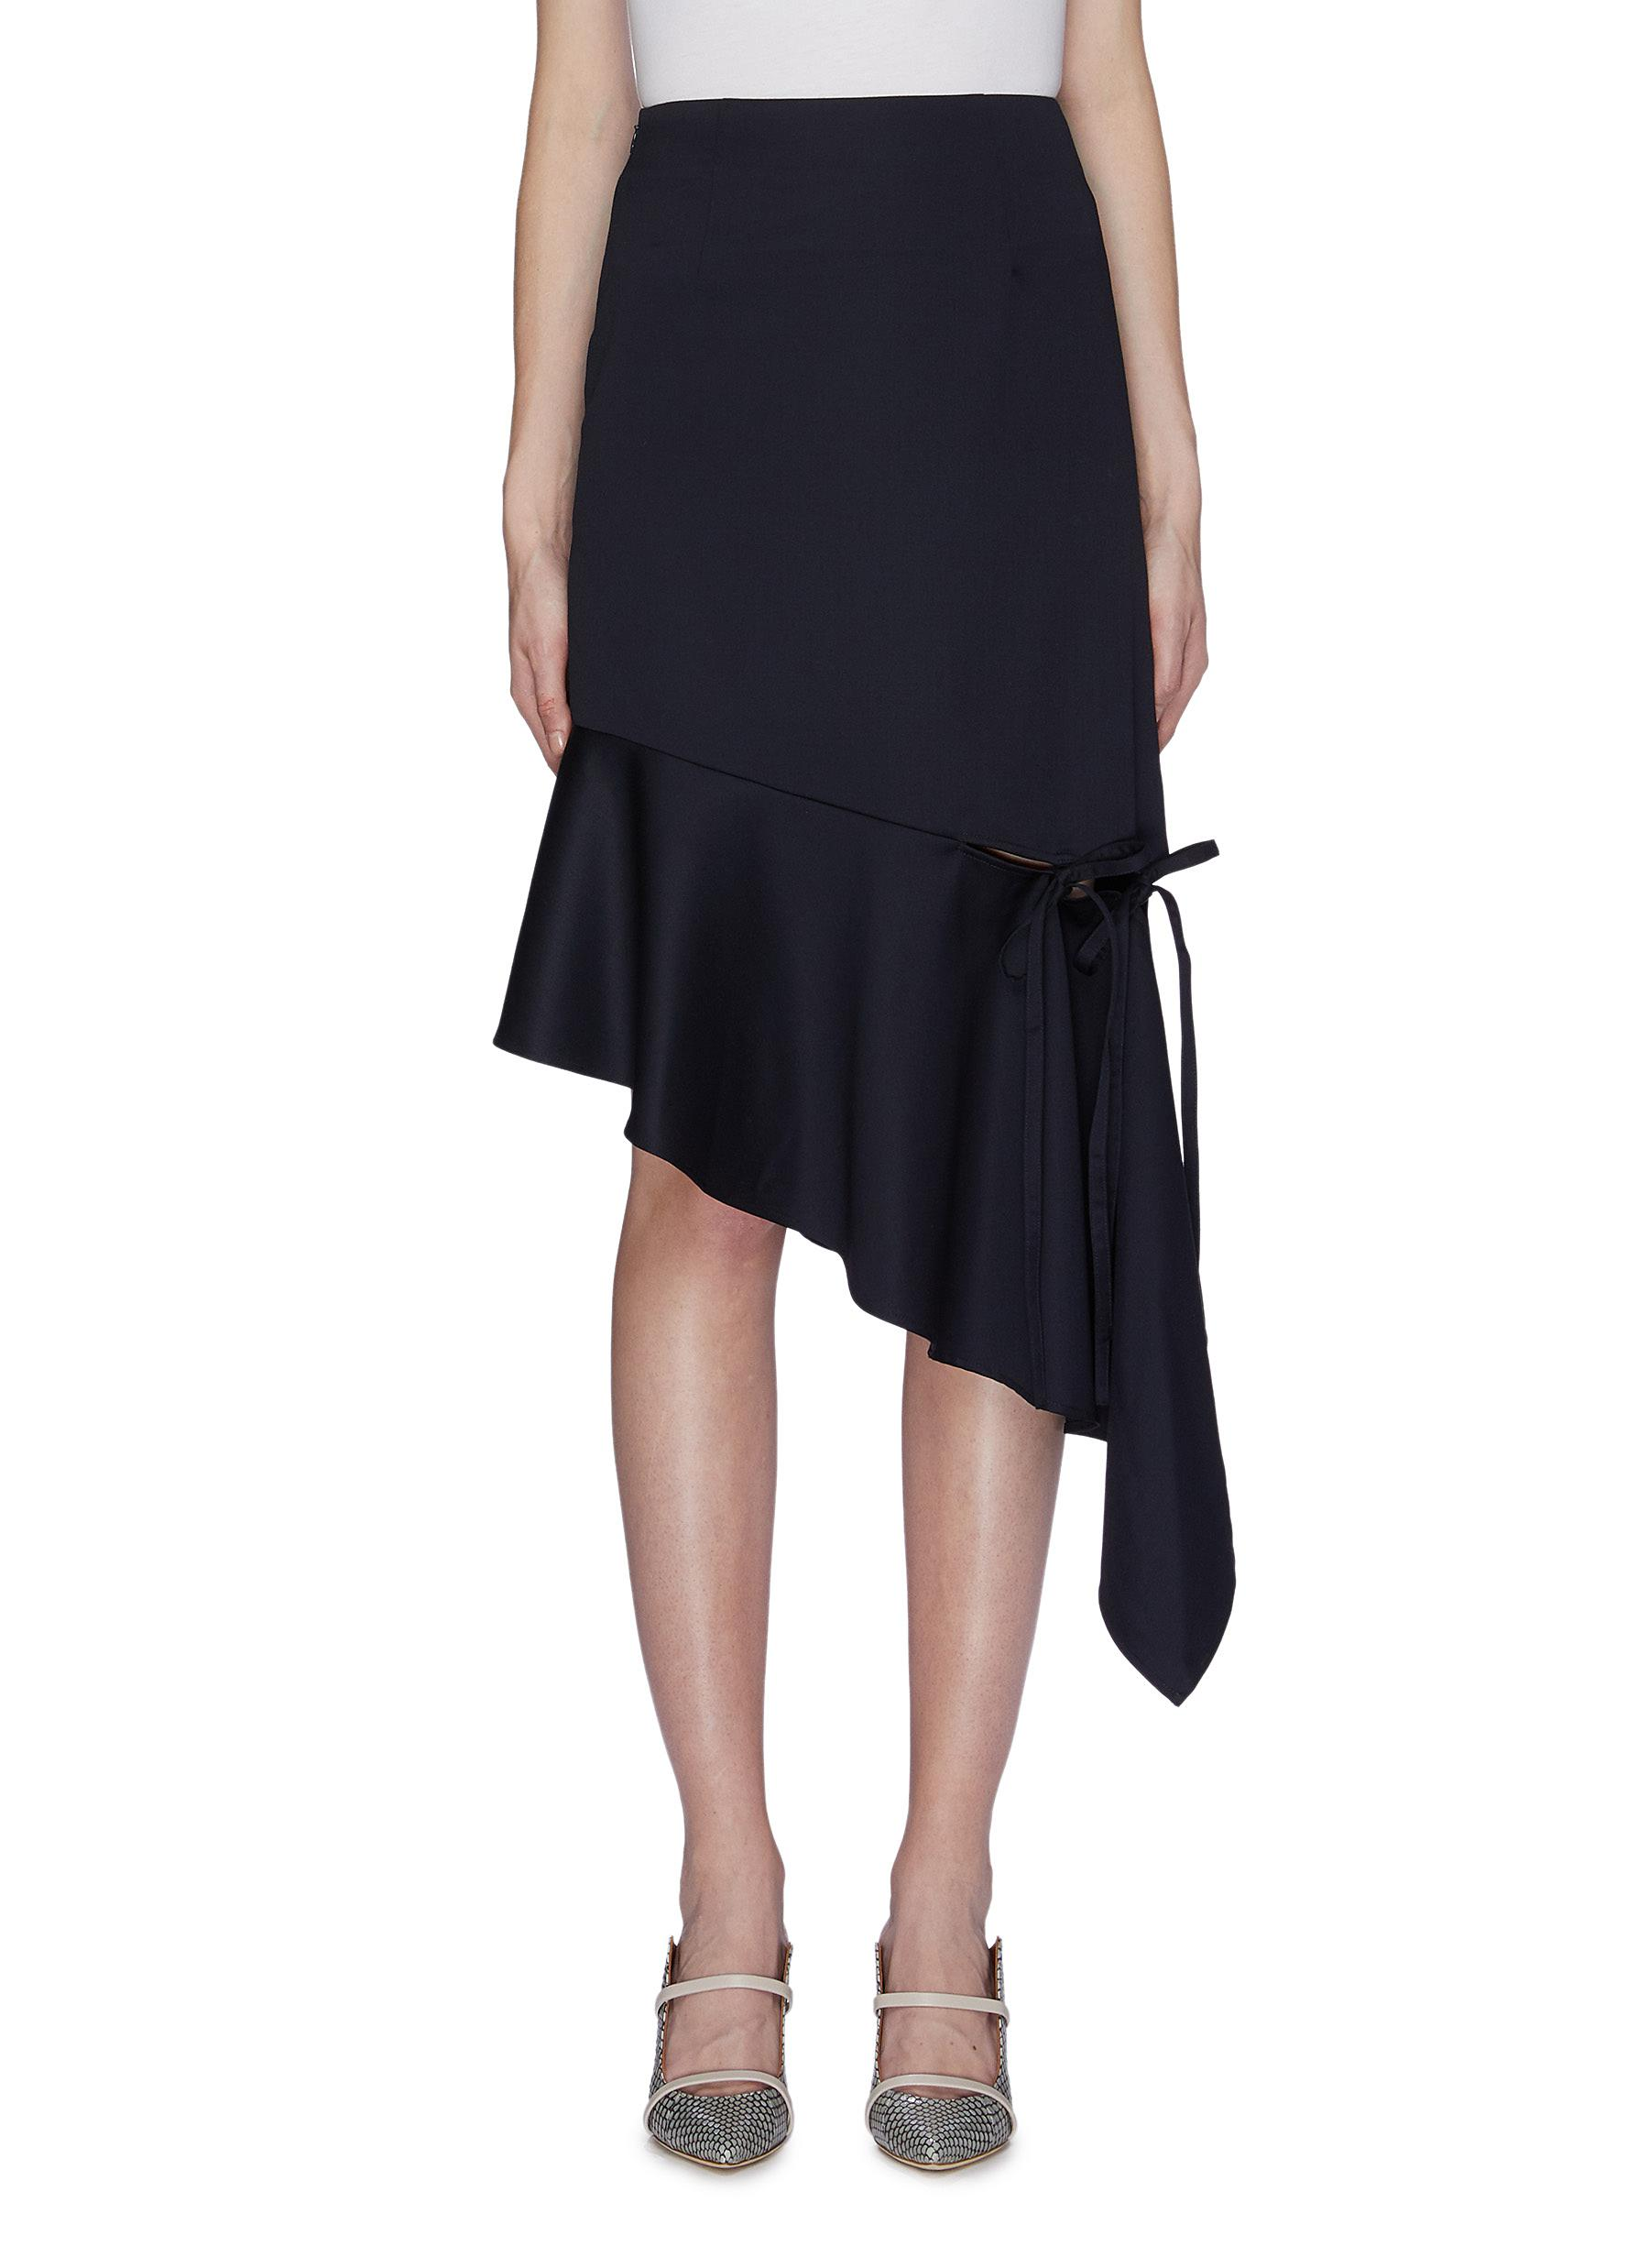 Bow tie slit hem asymmetric drape skirt by Ming Ma